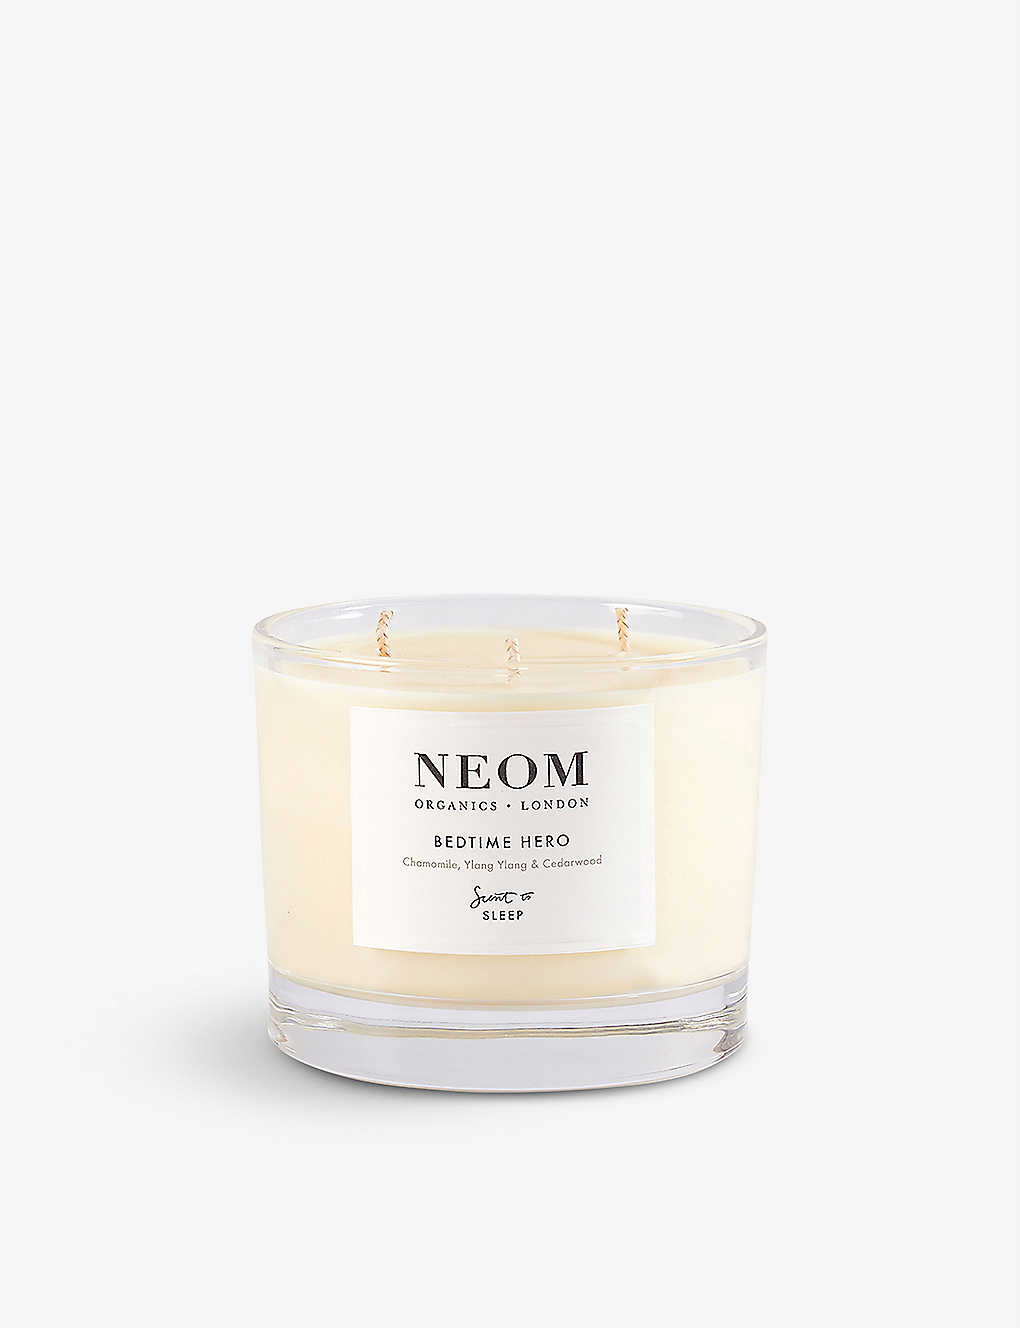 NEOM: Bedtime Hero scented candle 420g